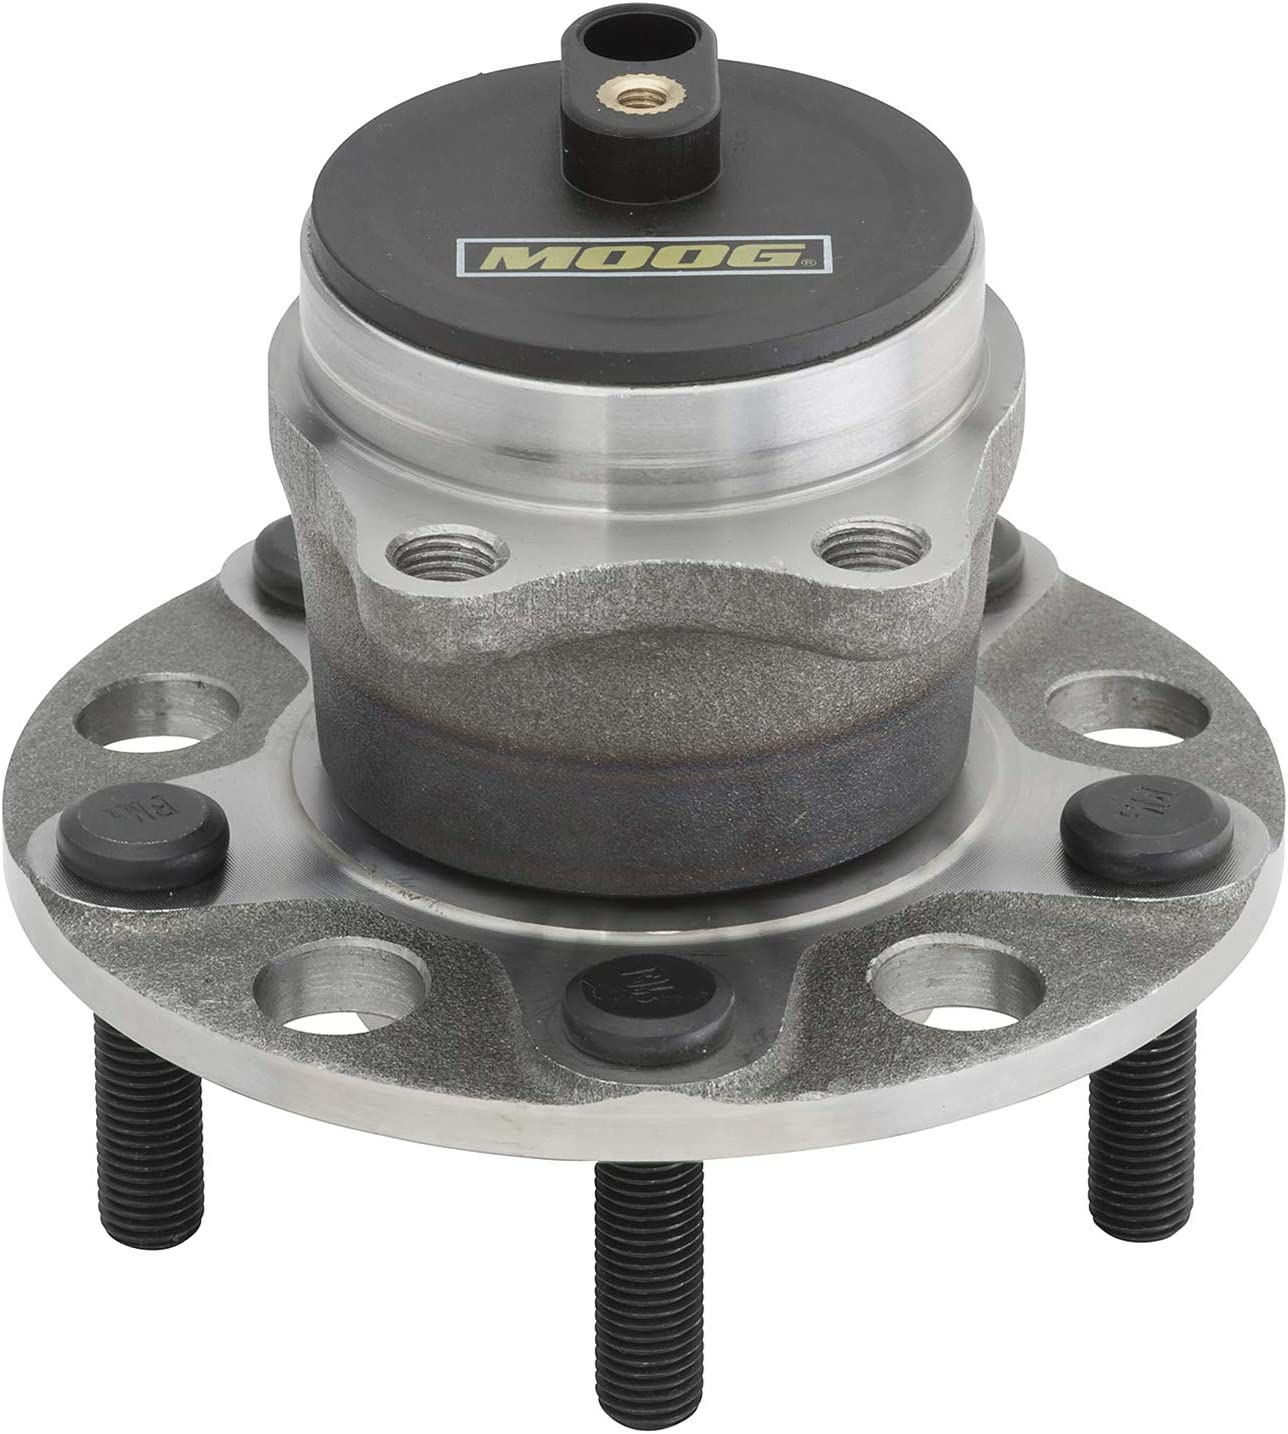 High order MOOG 512332 Wheel Bearing and Easy-to-use Hub Assembly